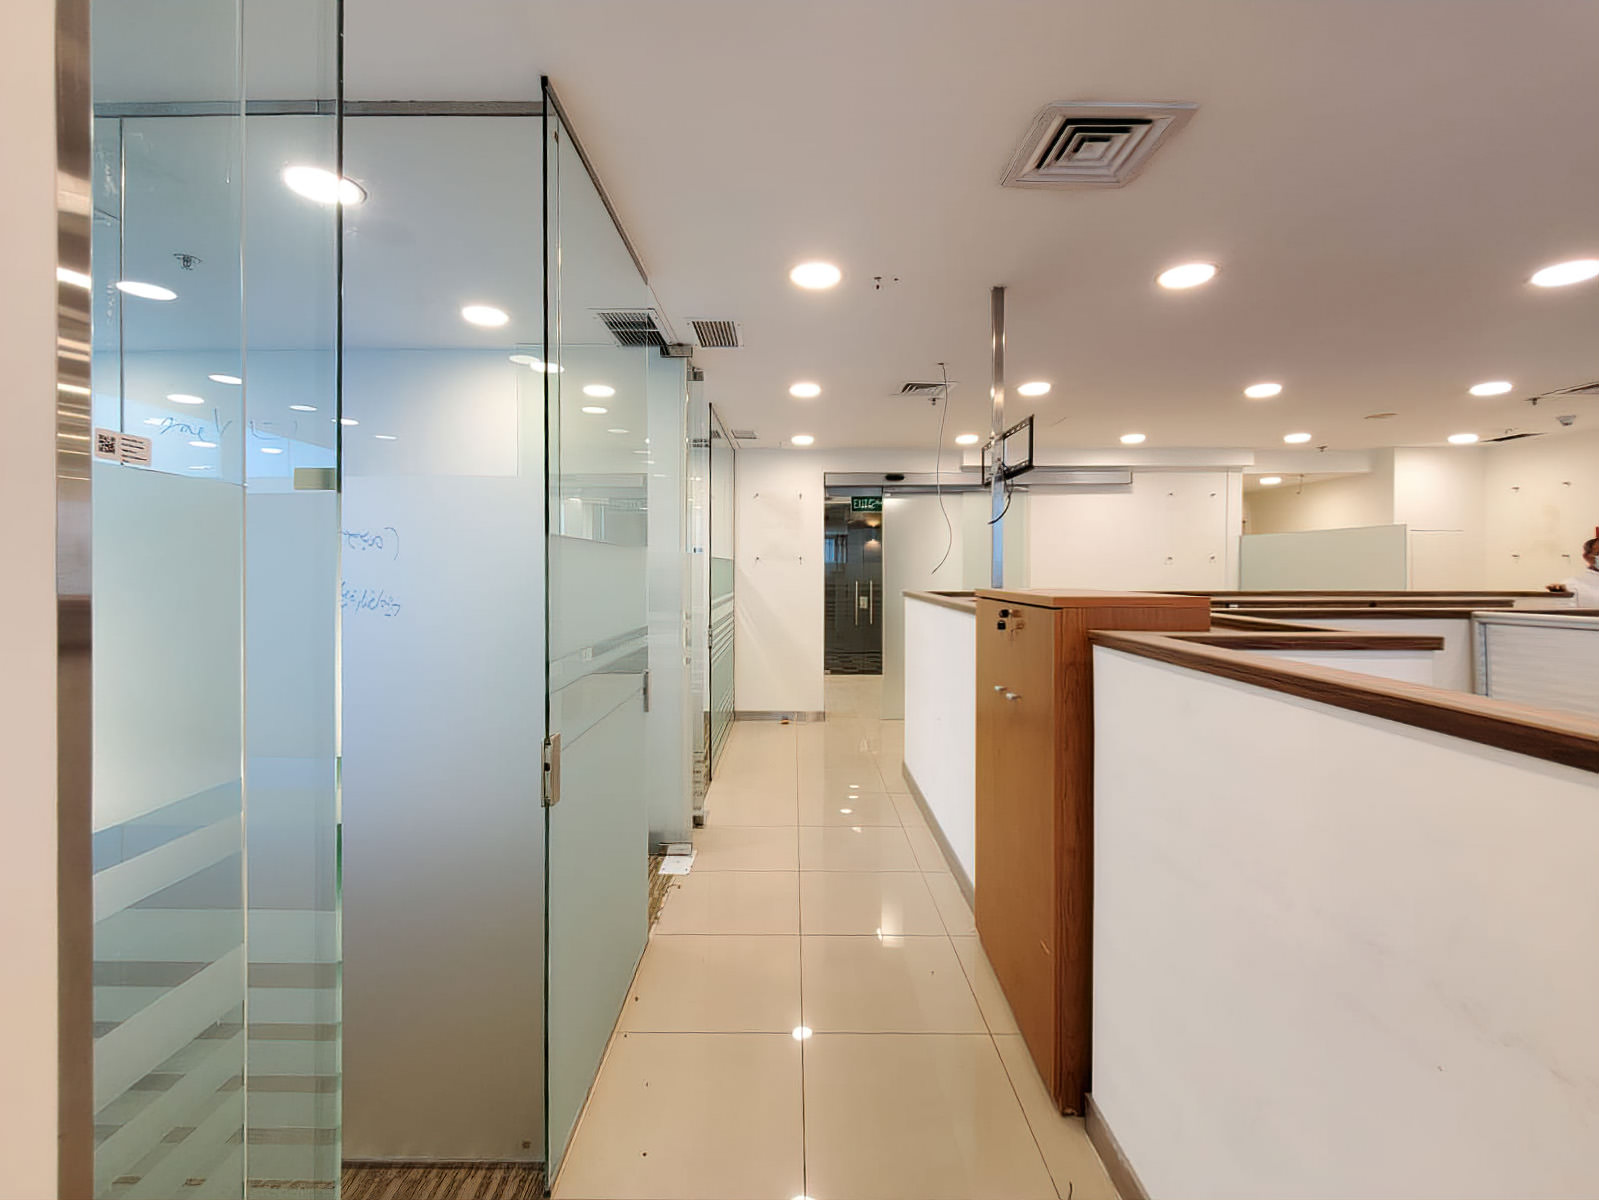 Sharq – 245m2 and 205m2 offices for rent